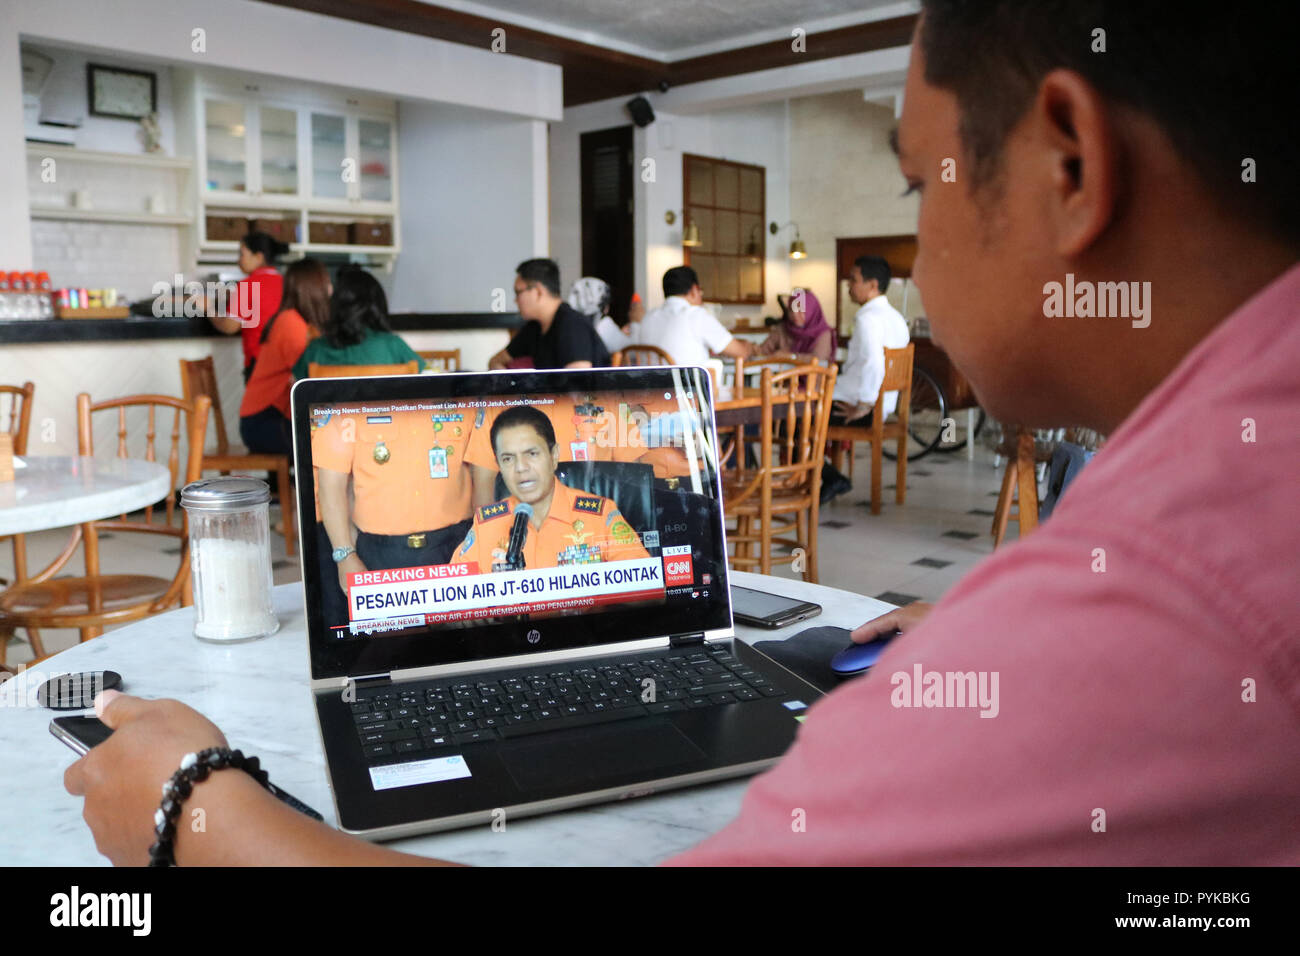 Makassar, Indonesia. 29th Oct, 2018. A resident watched the live broadcast of the fall of Lion Air JT 610 on a laptop in Makassar, Indonesia, Monday, October 29, 2018. Lion Air's flight from Jakarta to Pangkal Pinang fell in Tanjung Karawang, West Java shortly after takeoff Credit: Herwin Bahar/Alamy Live News - Stock Image